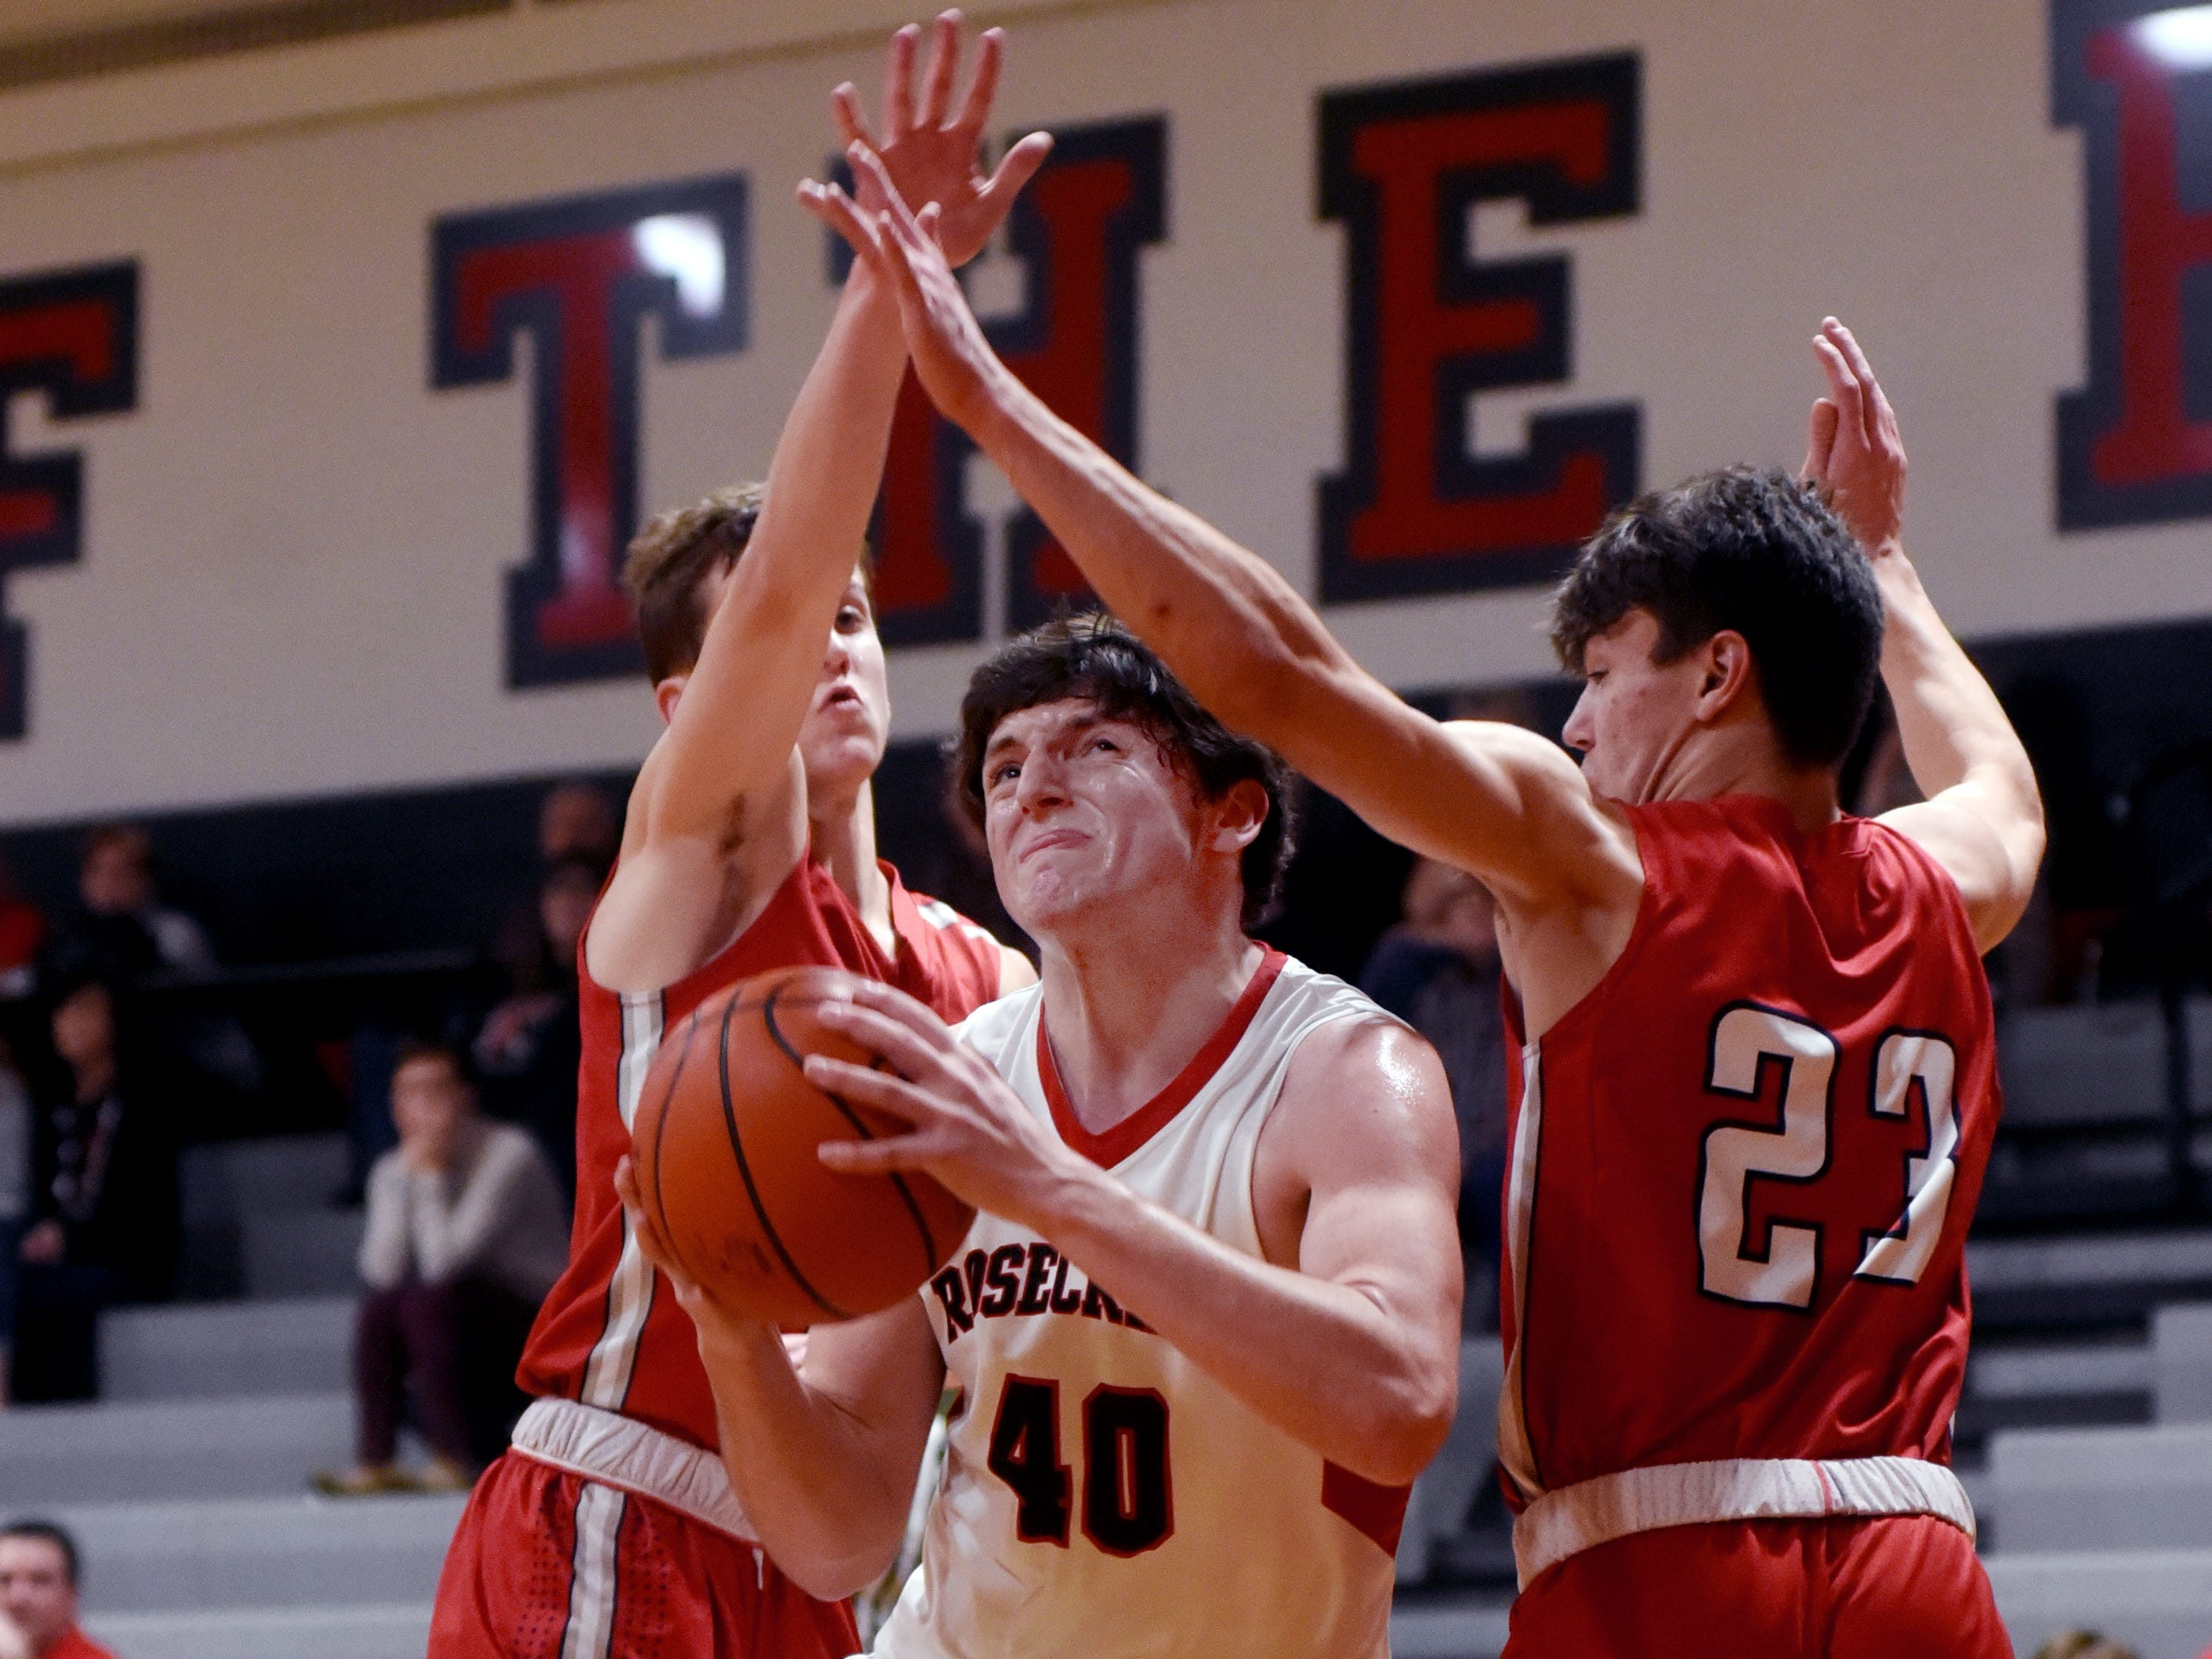 Matt Applegate, of Rosecrans, drives between a pair of defenders during the first half of the Bishops' 89-48 win against Fairfield Christian Academy on Tuesday in a Mid-State League-Cardinal Division game at Rogge Gymnasium. Applegate scored a game-high 20 points with nine rebounds.